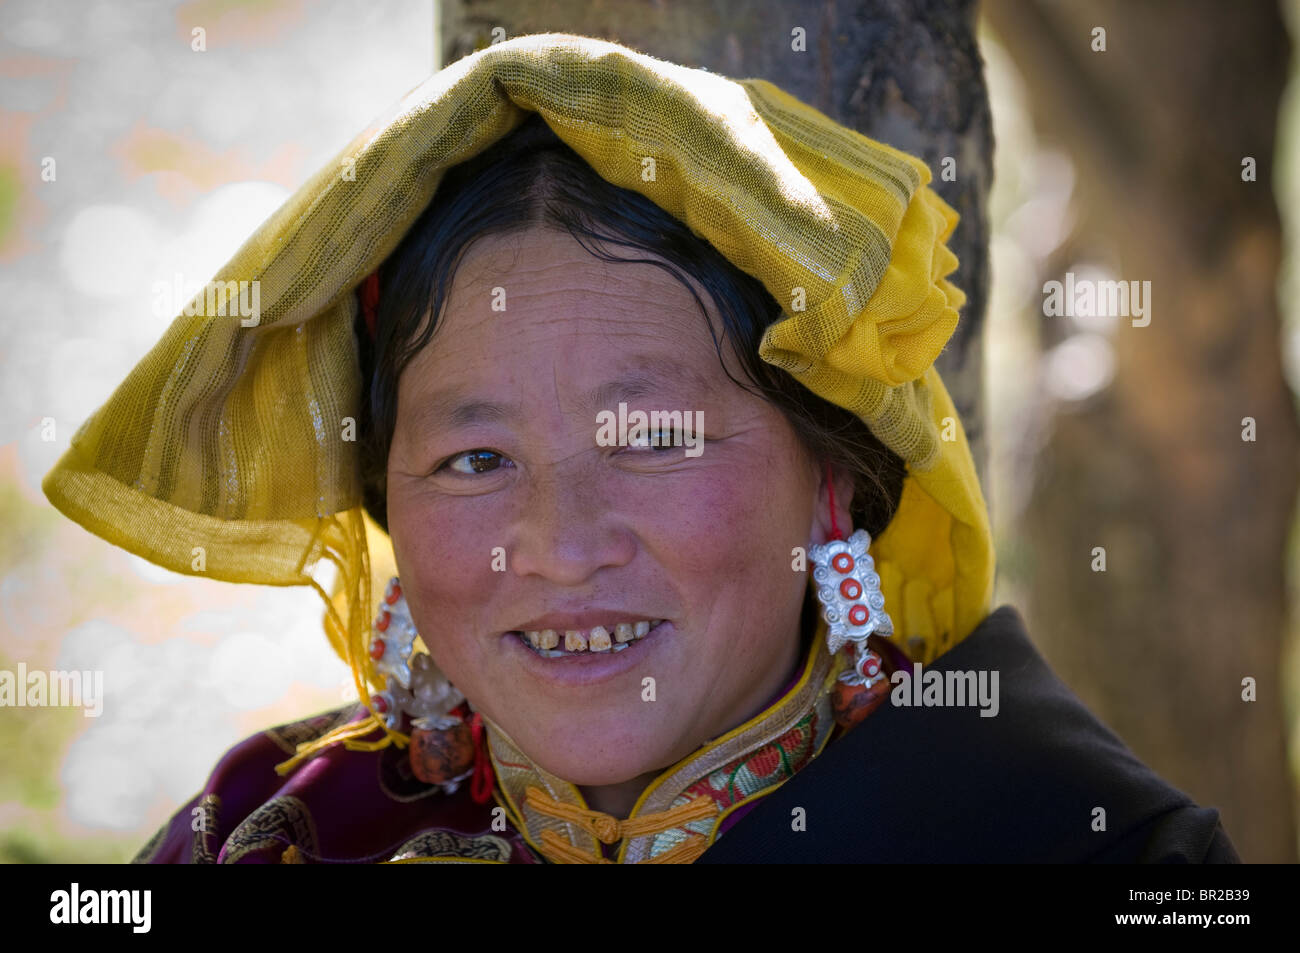 Ethnic Tibetan woman wears traditional costume at weekend festival, Bamei, Sichuan Province, China - Stock Image